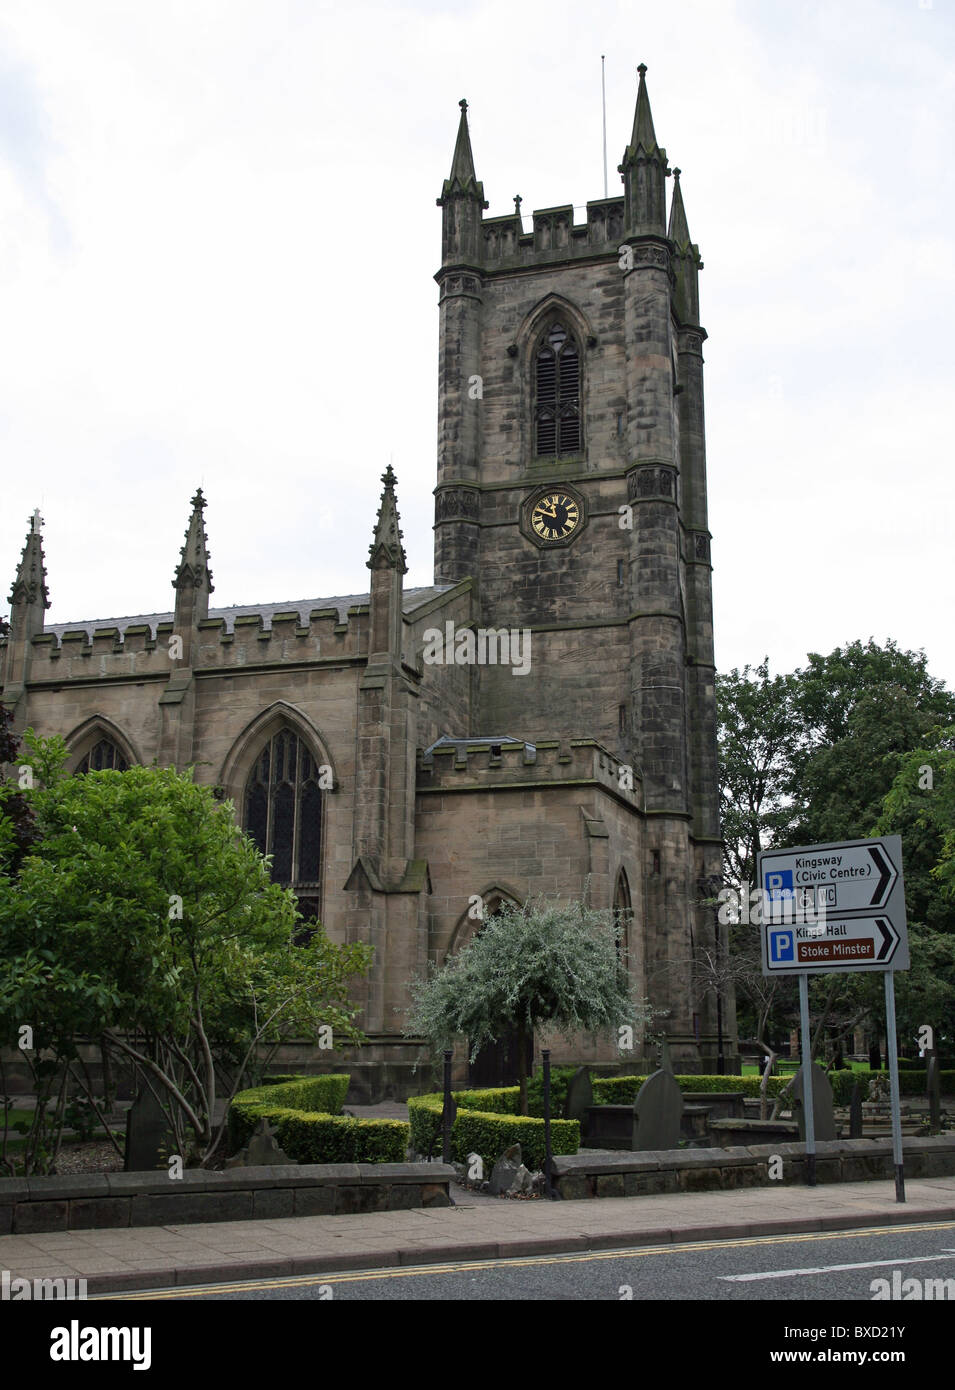 The church of St Peter ad Vincula also known as Stoke Minster Stoke-on-Trent Staffs Staffordshire England UK - Stock Image